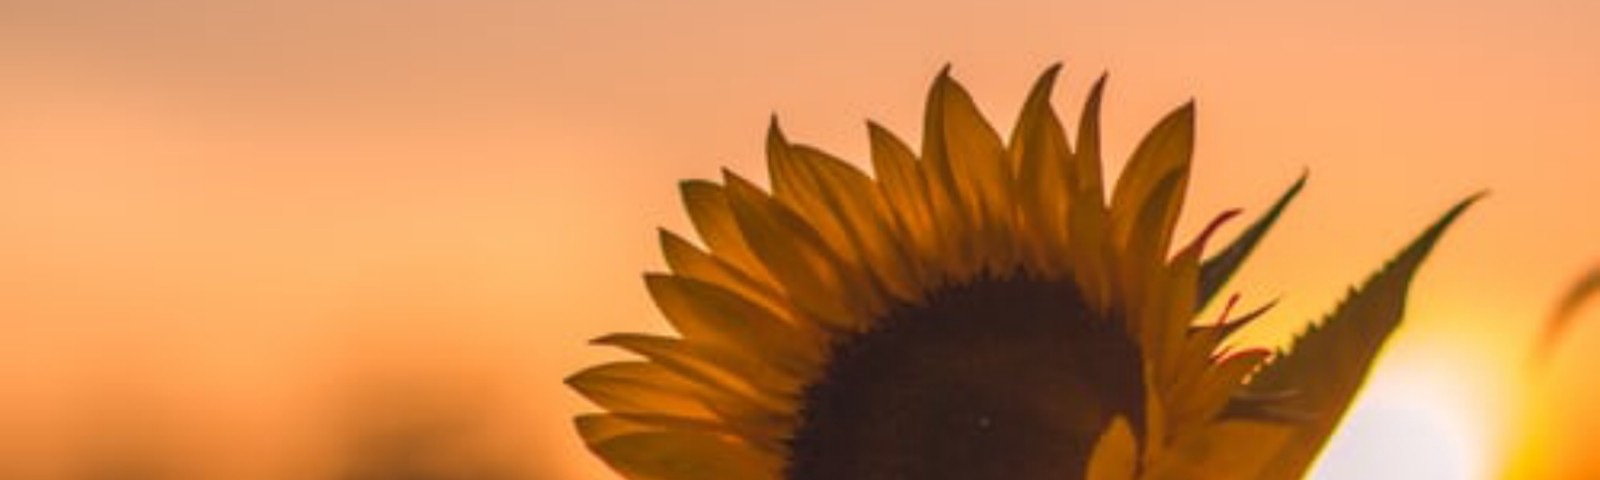 A yellow sunflower standing tall, with the orange glow of the setting sun as a background.